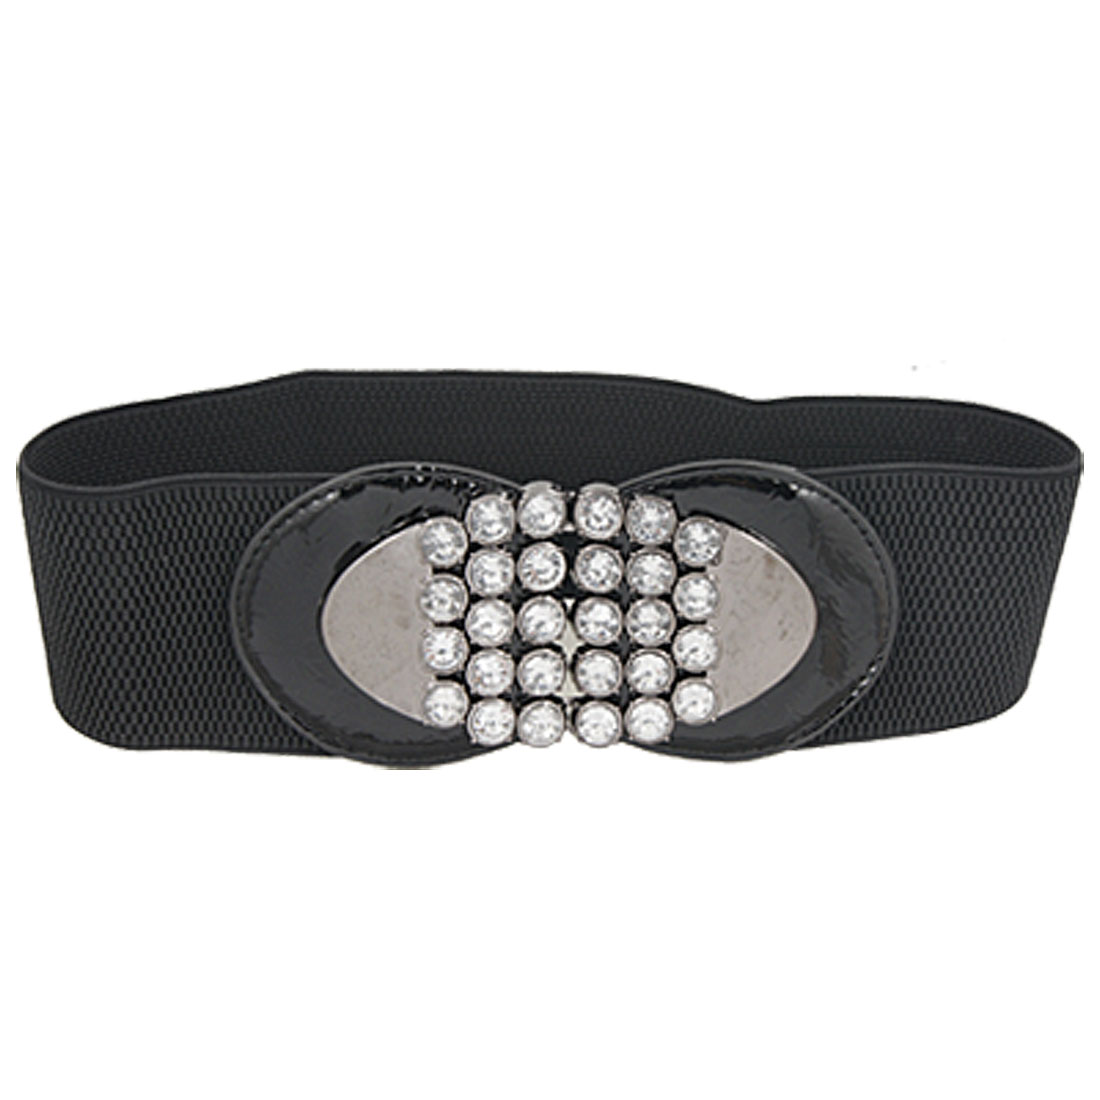 Ladies Rhinestone Inlaid Oval Interlock Buckle Black Elastic High Waist Belt